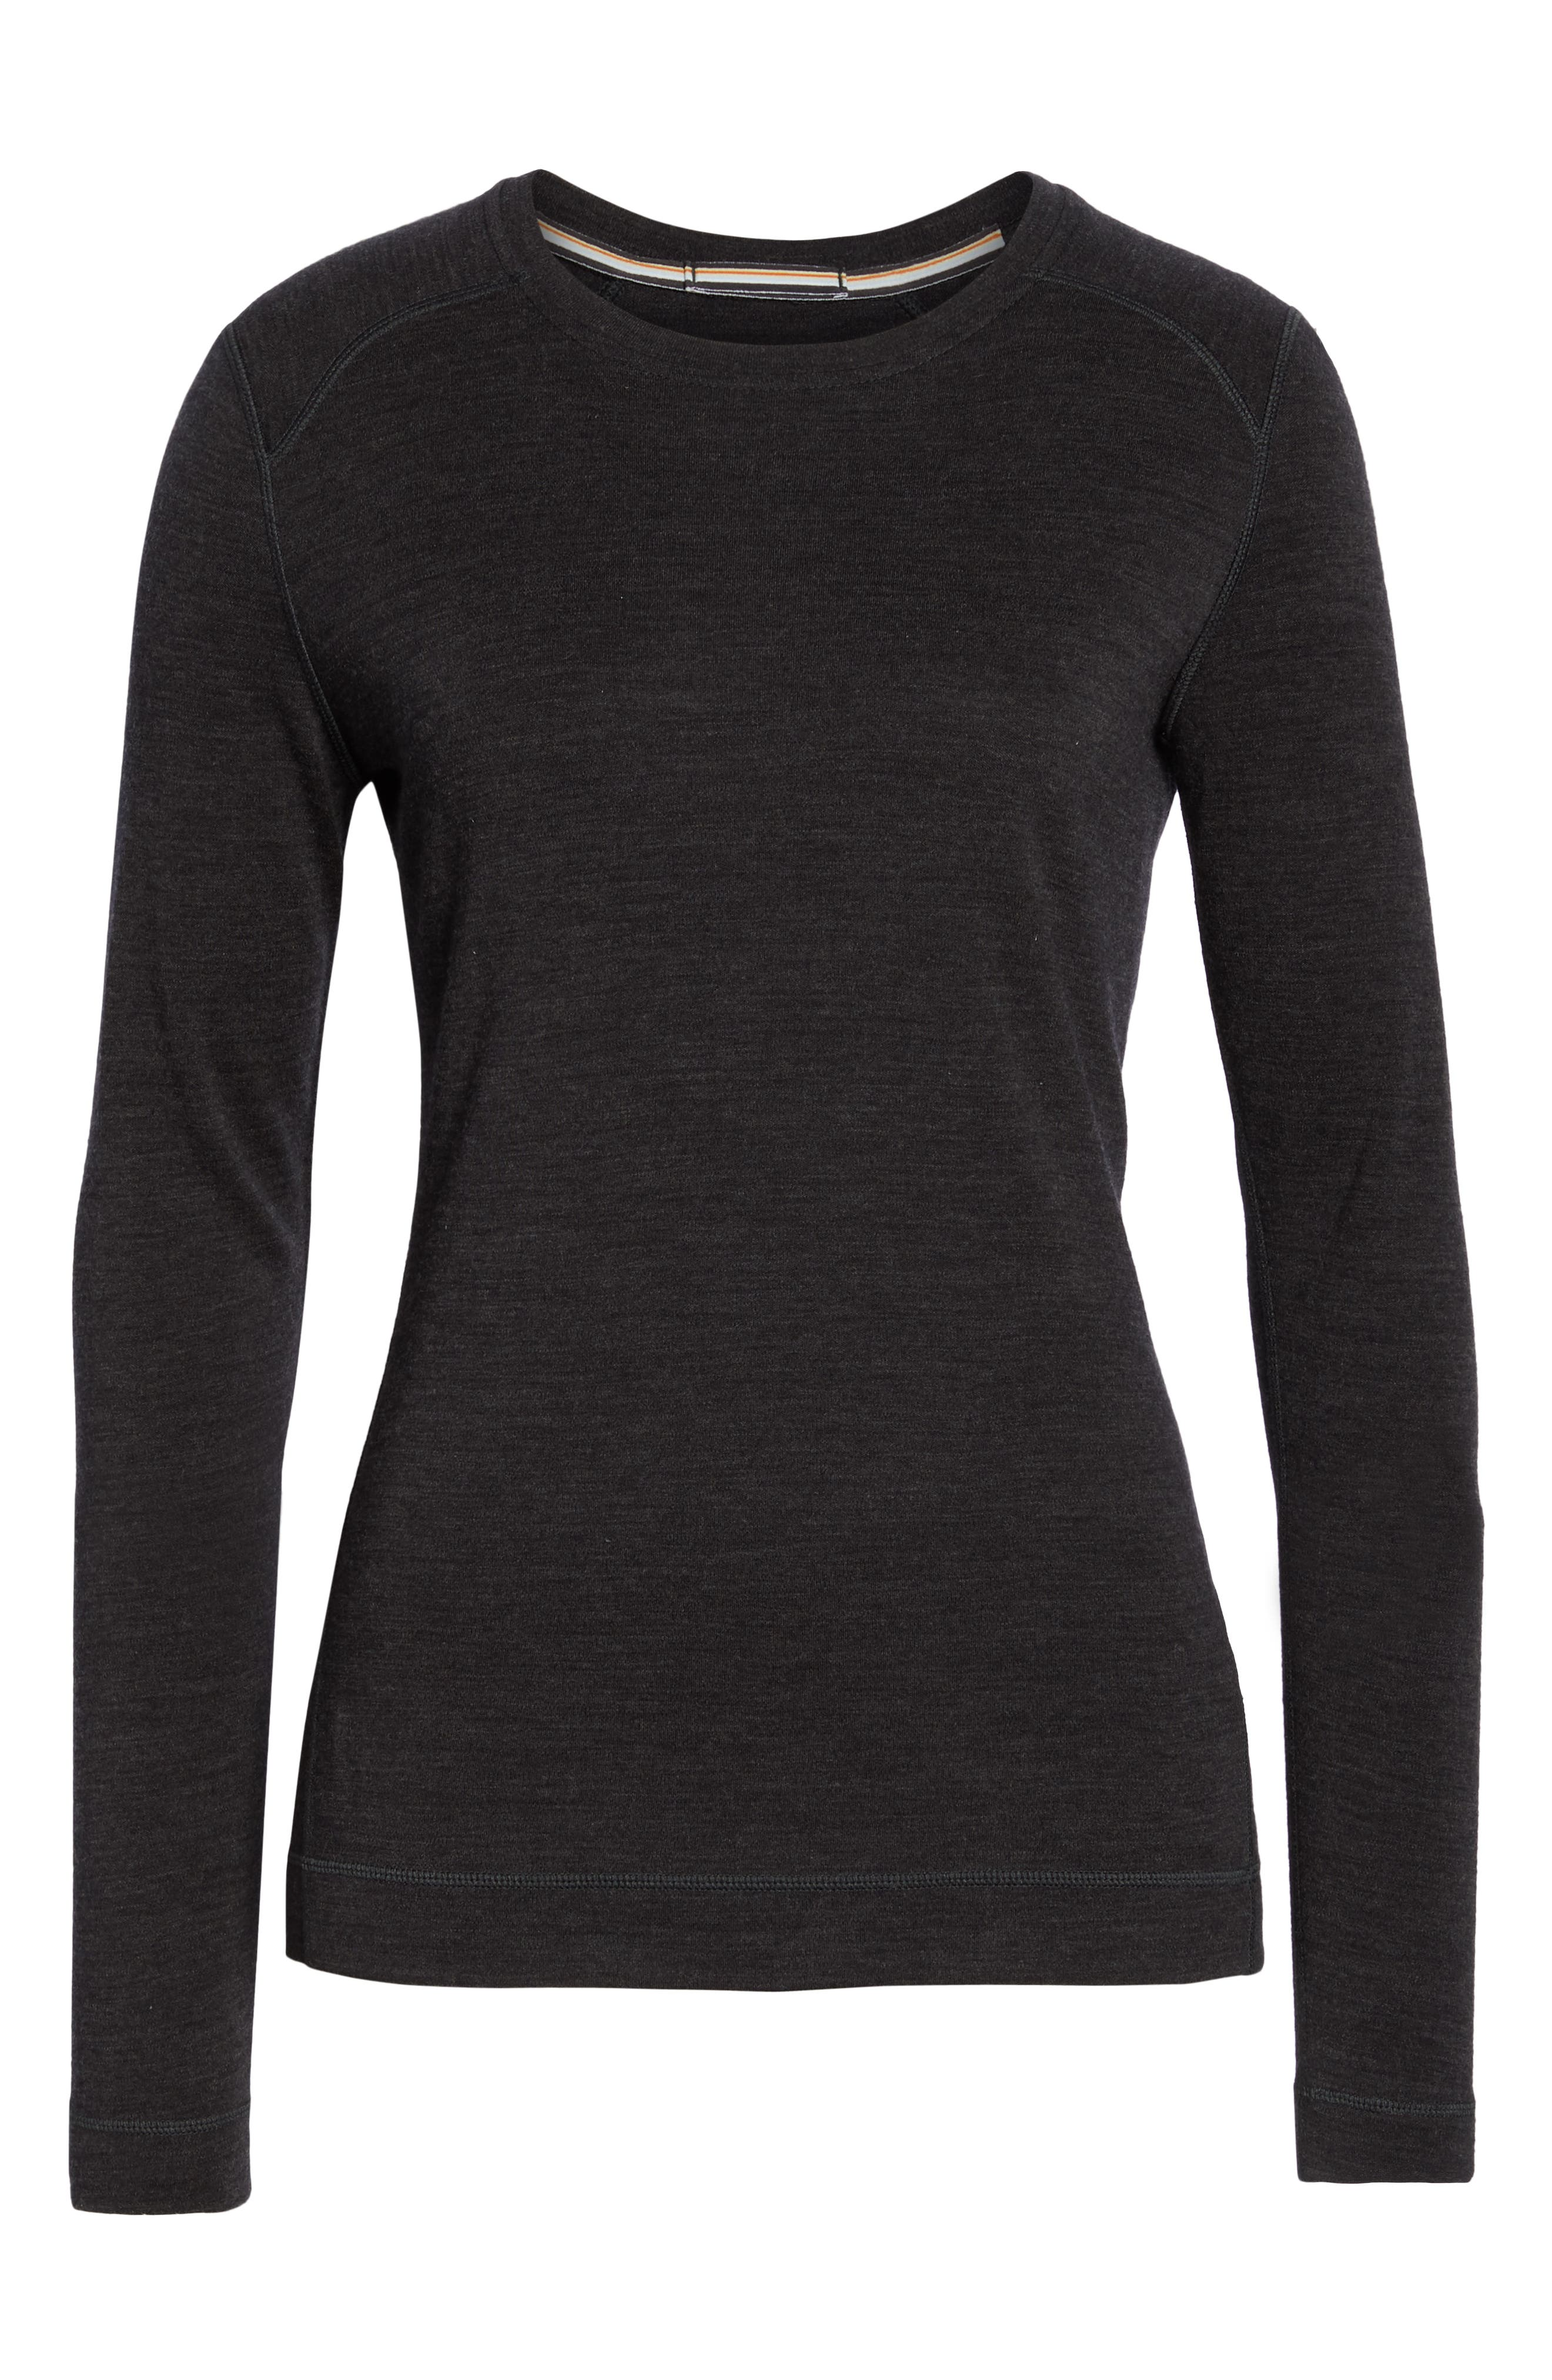 Merino 250 Base Layer Crew Top,                             Alternate thumbnail 7, color,                             CHARCOAL HEATHER